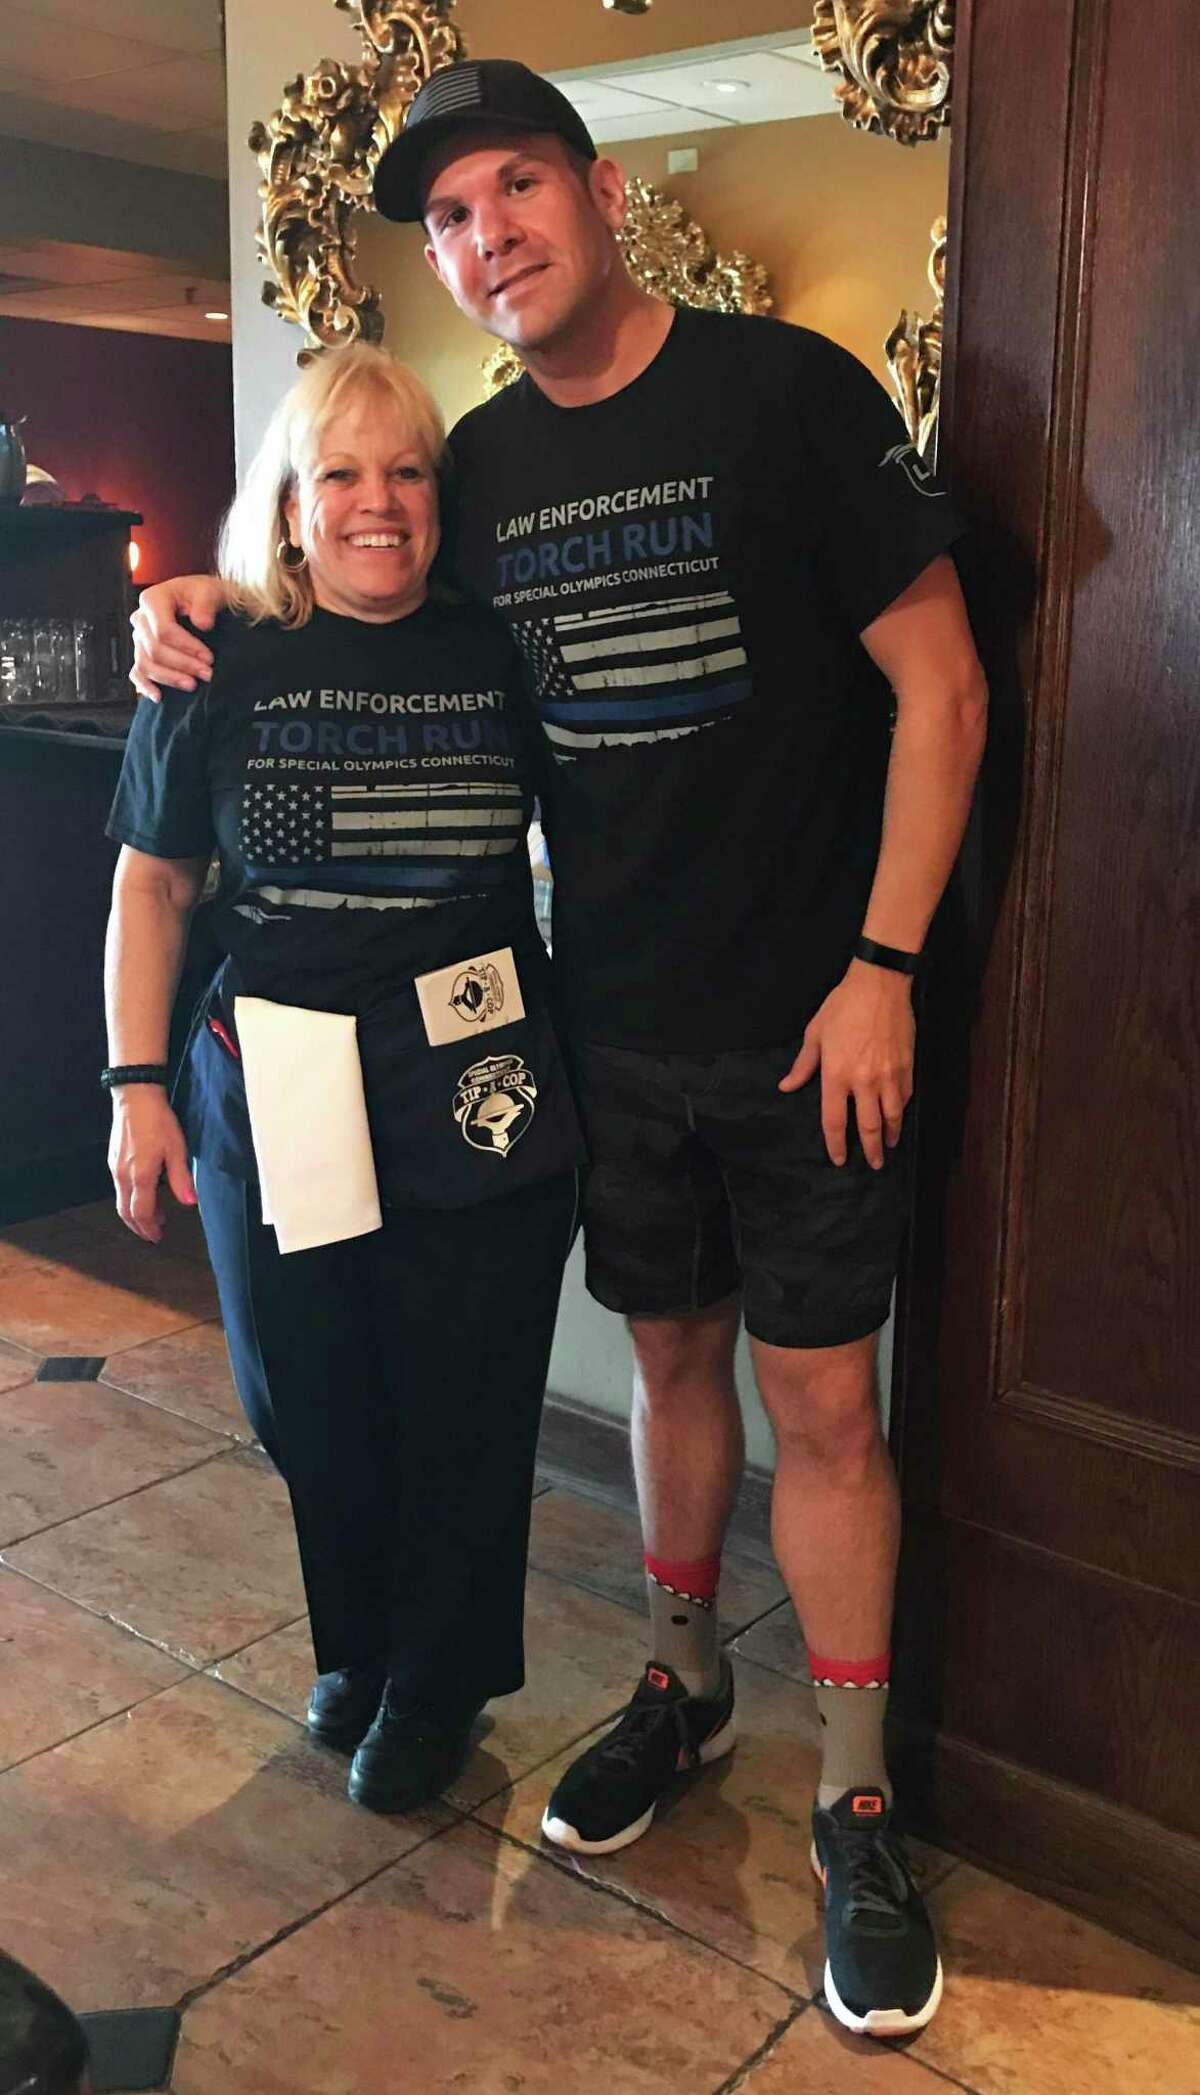 The annual Tip a Cop fundraiser will benefit the Special Olympics of Connecticut at Amici Italian Grill on Main Street in Middletown Thursday from noon to 8 p.m.